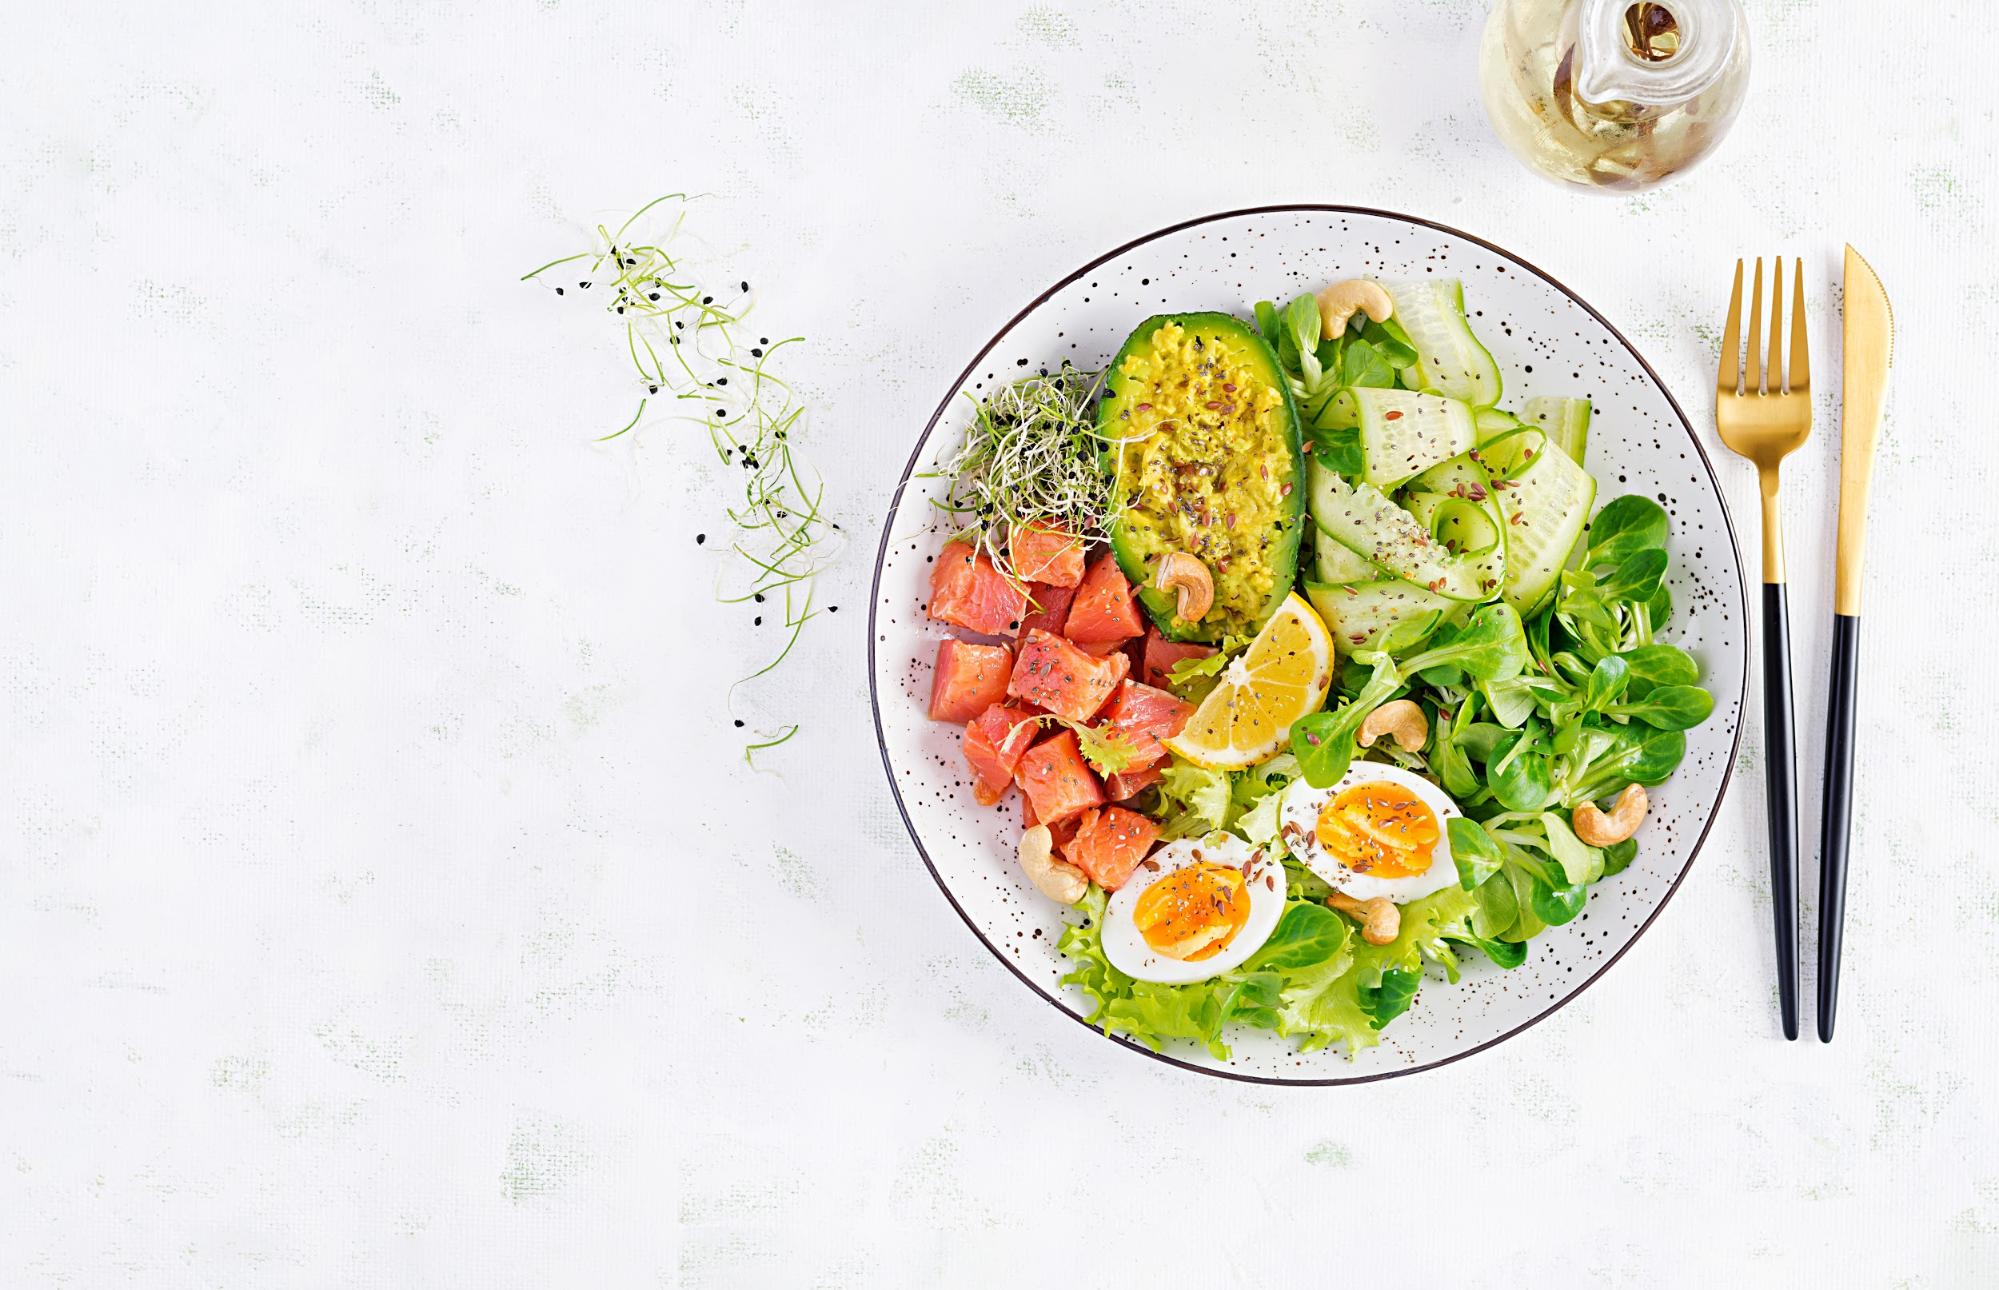 A plate of fruits, vegetables and eggs with gold knife and fork beside it on a white surface